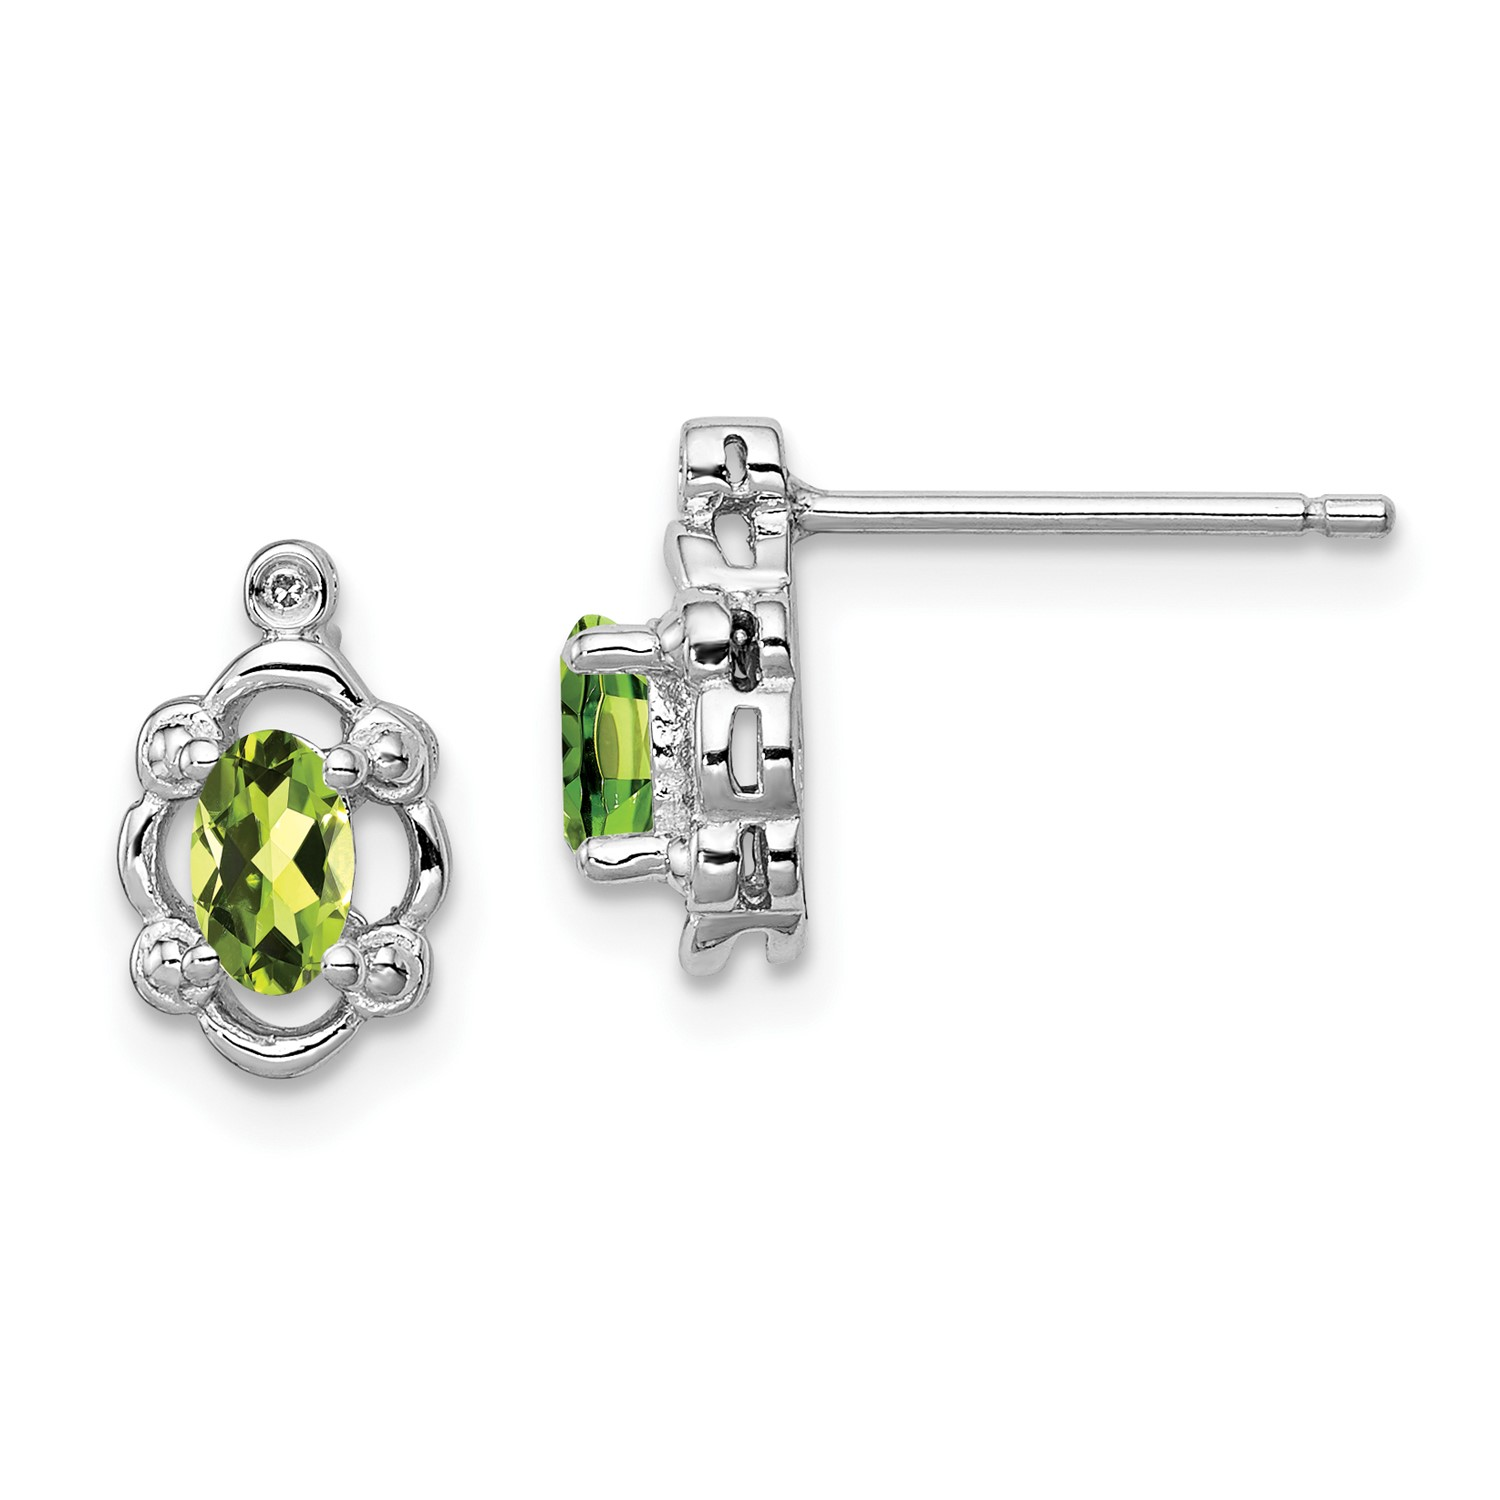 65af495d7 Sterling Silver Peridot & Diamond Earrings. Gem Wt- 0.49ct (10MM x ...